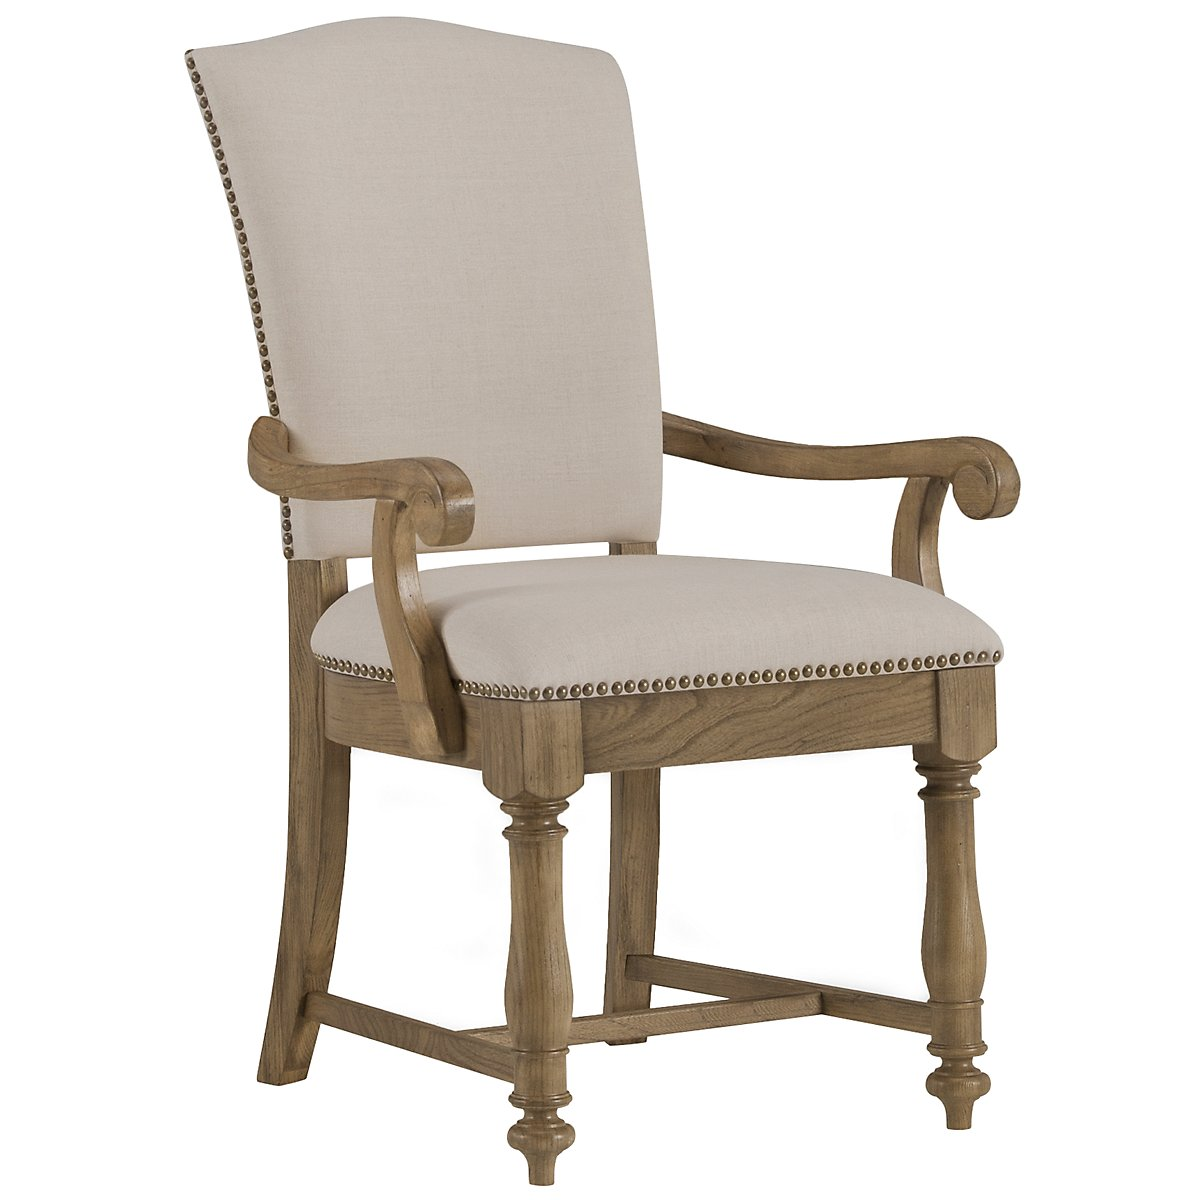 Coventry Light Tone Upholstered Arm Chair